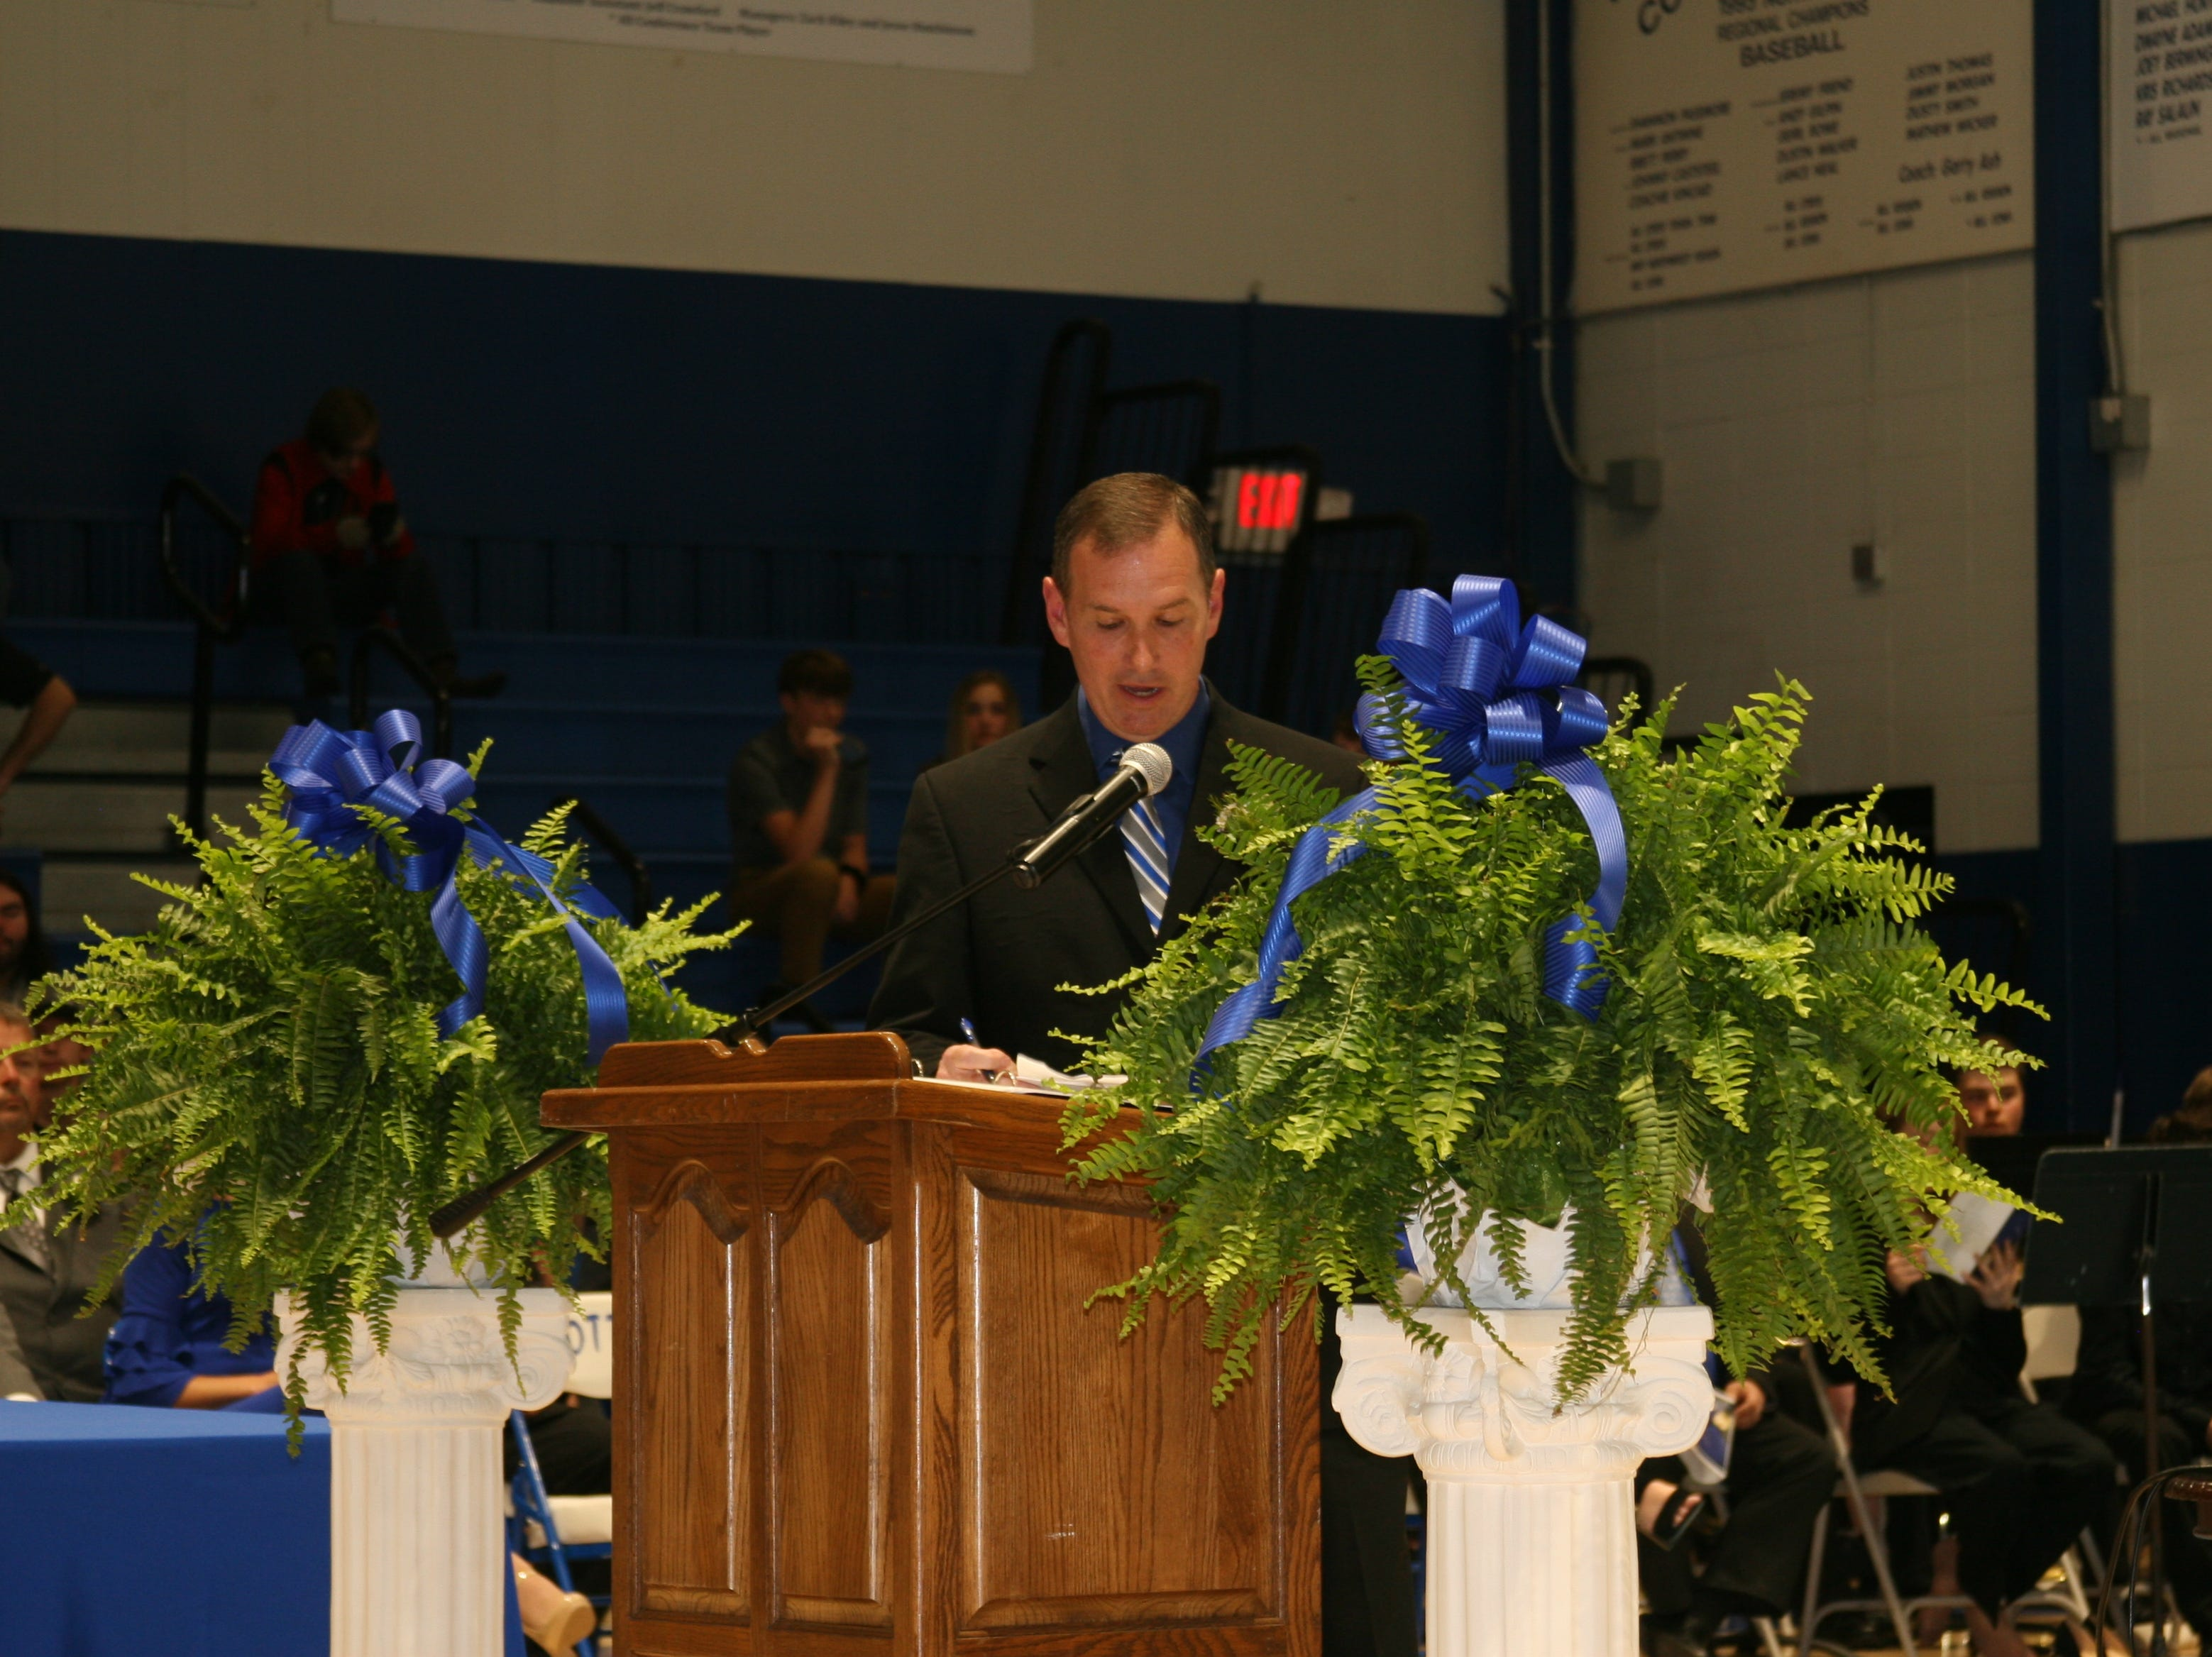 Cotter High School Principal Doug Corley introduces members of the Cotter School Board Saturday night, who presented diplomas to the 61 members of Cotter High School's 2019 graduating class.